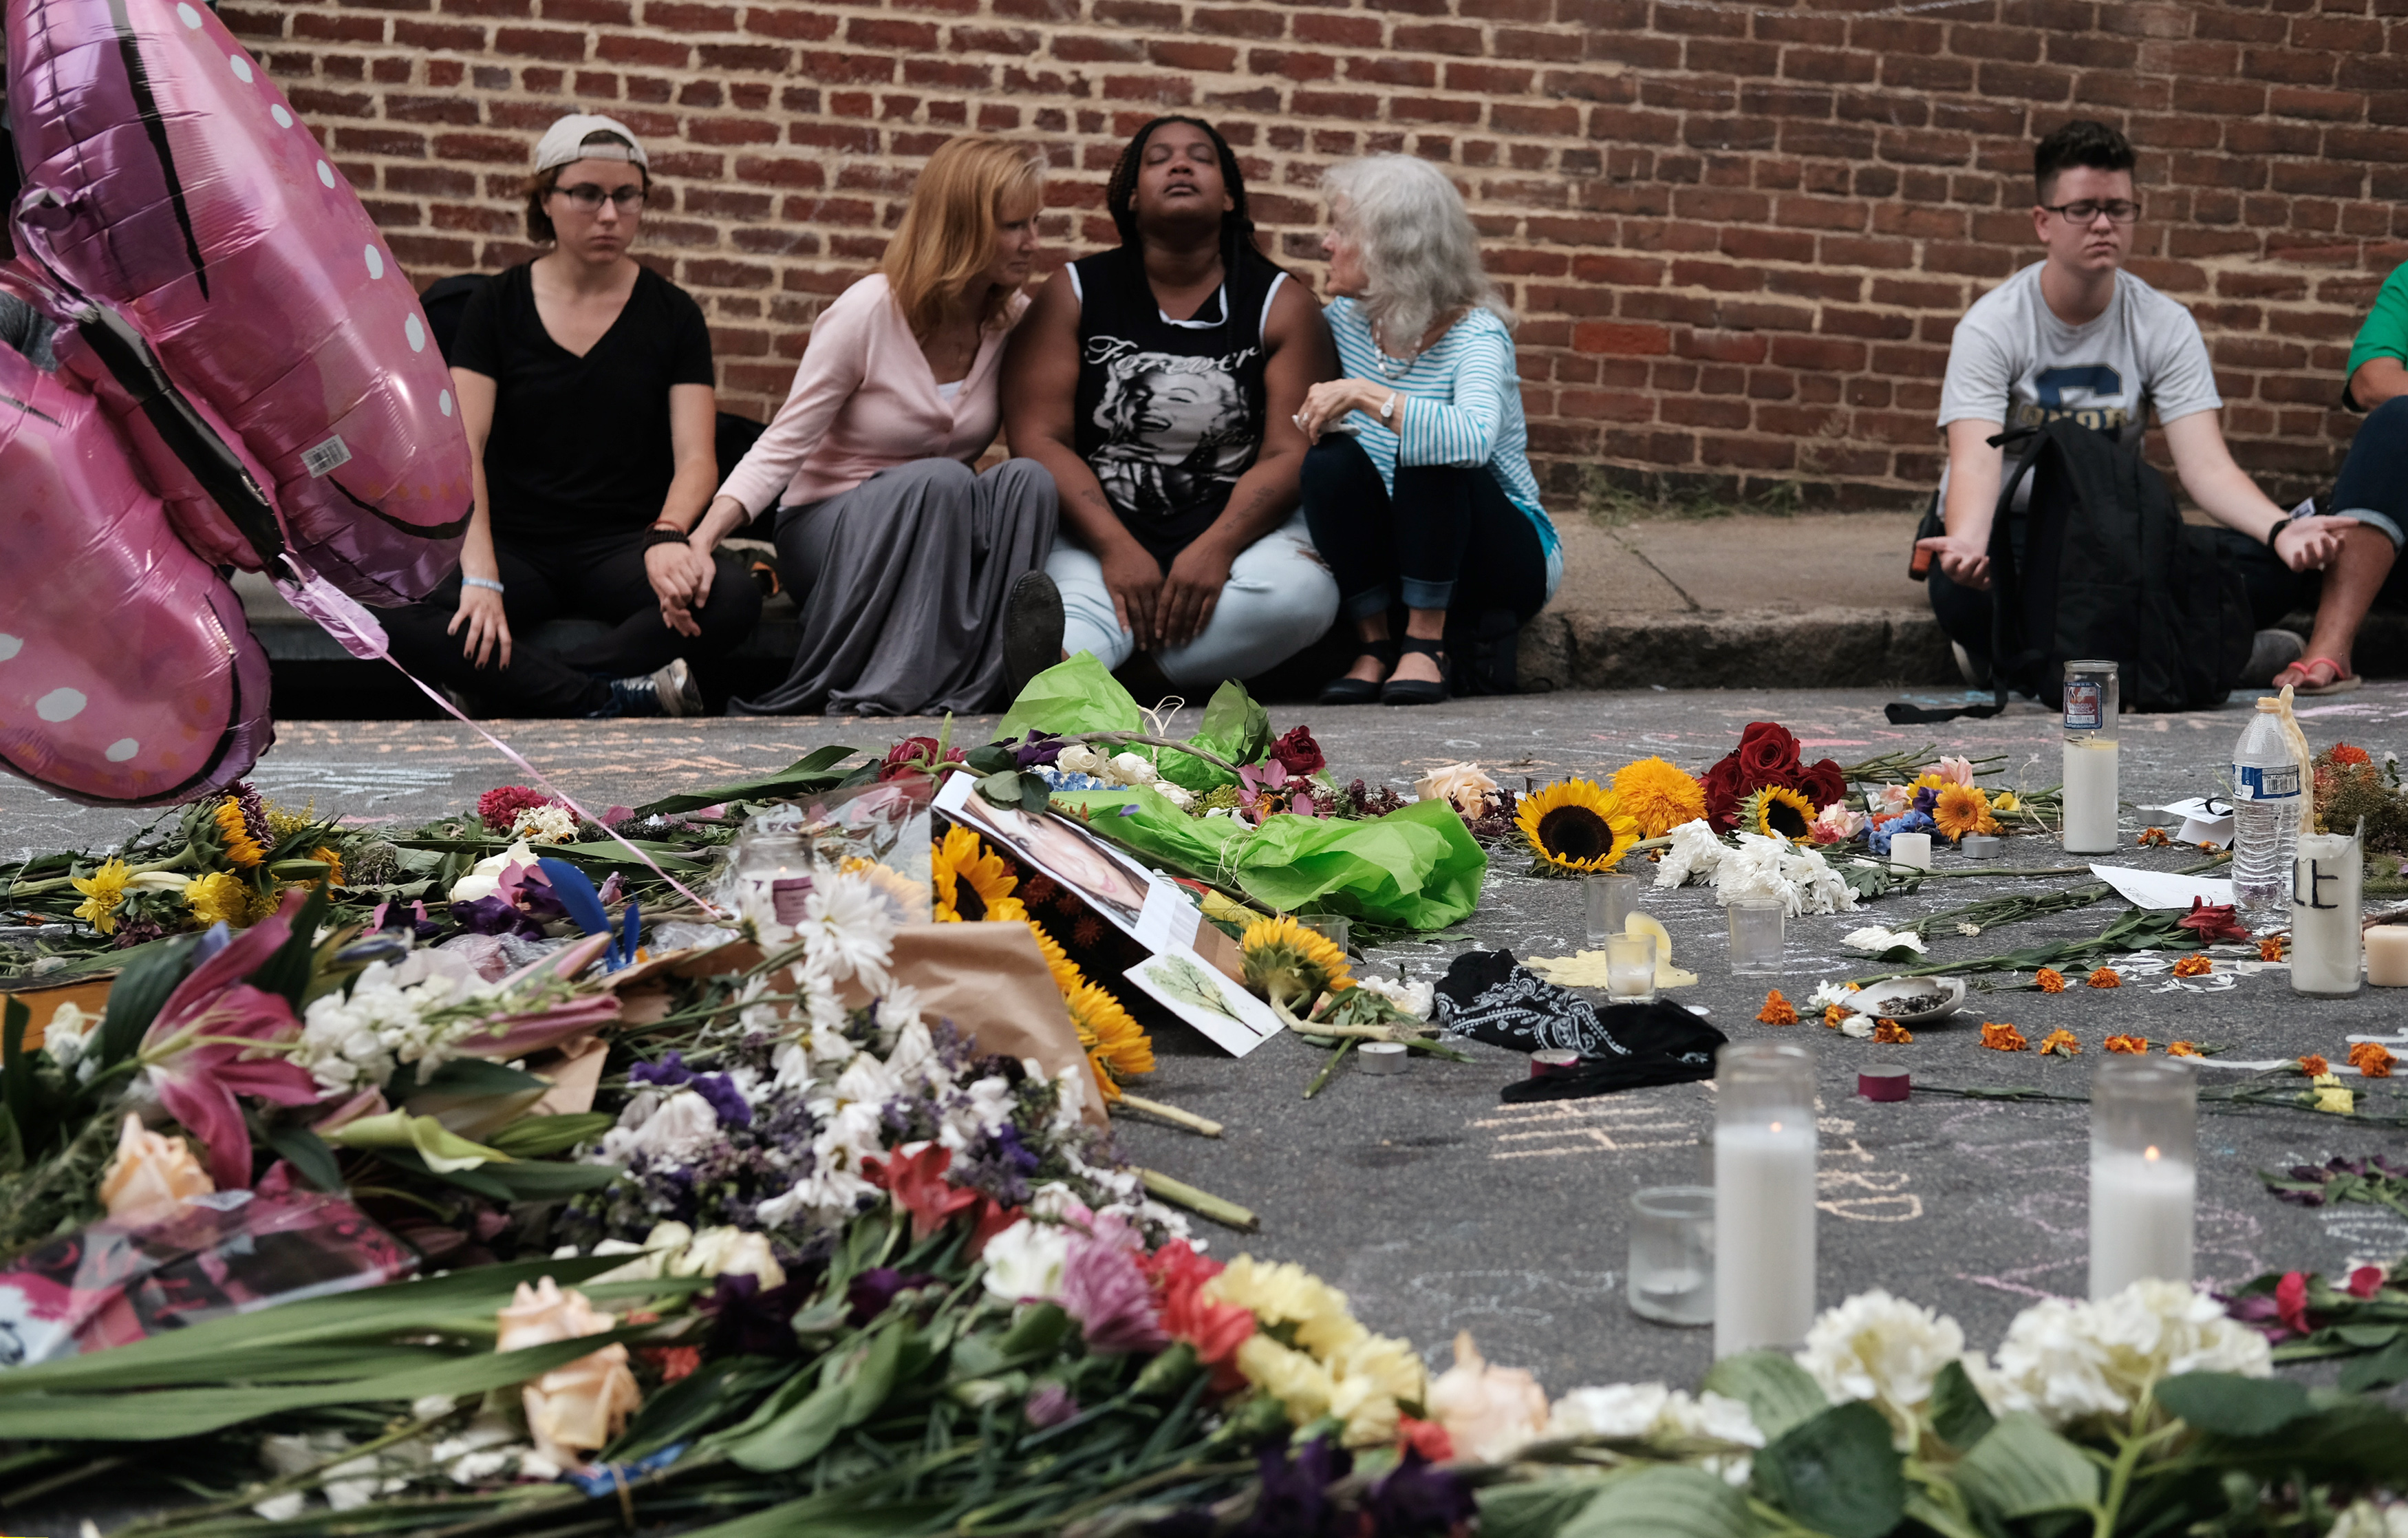 "Women sit by an impromptu memorial of flowers commemorating the victims at the scene of the car attack on a group of counter-protesters during the ""Unite the Right"" rally as people continue to react to the weekend violence in Charlottesville, Virginia. REUTERS/Justin Ide"